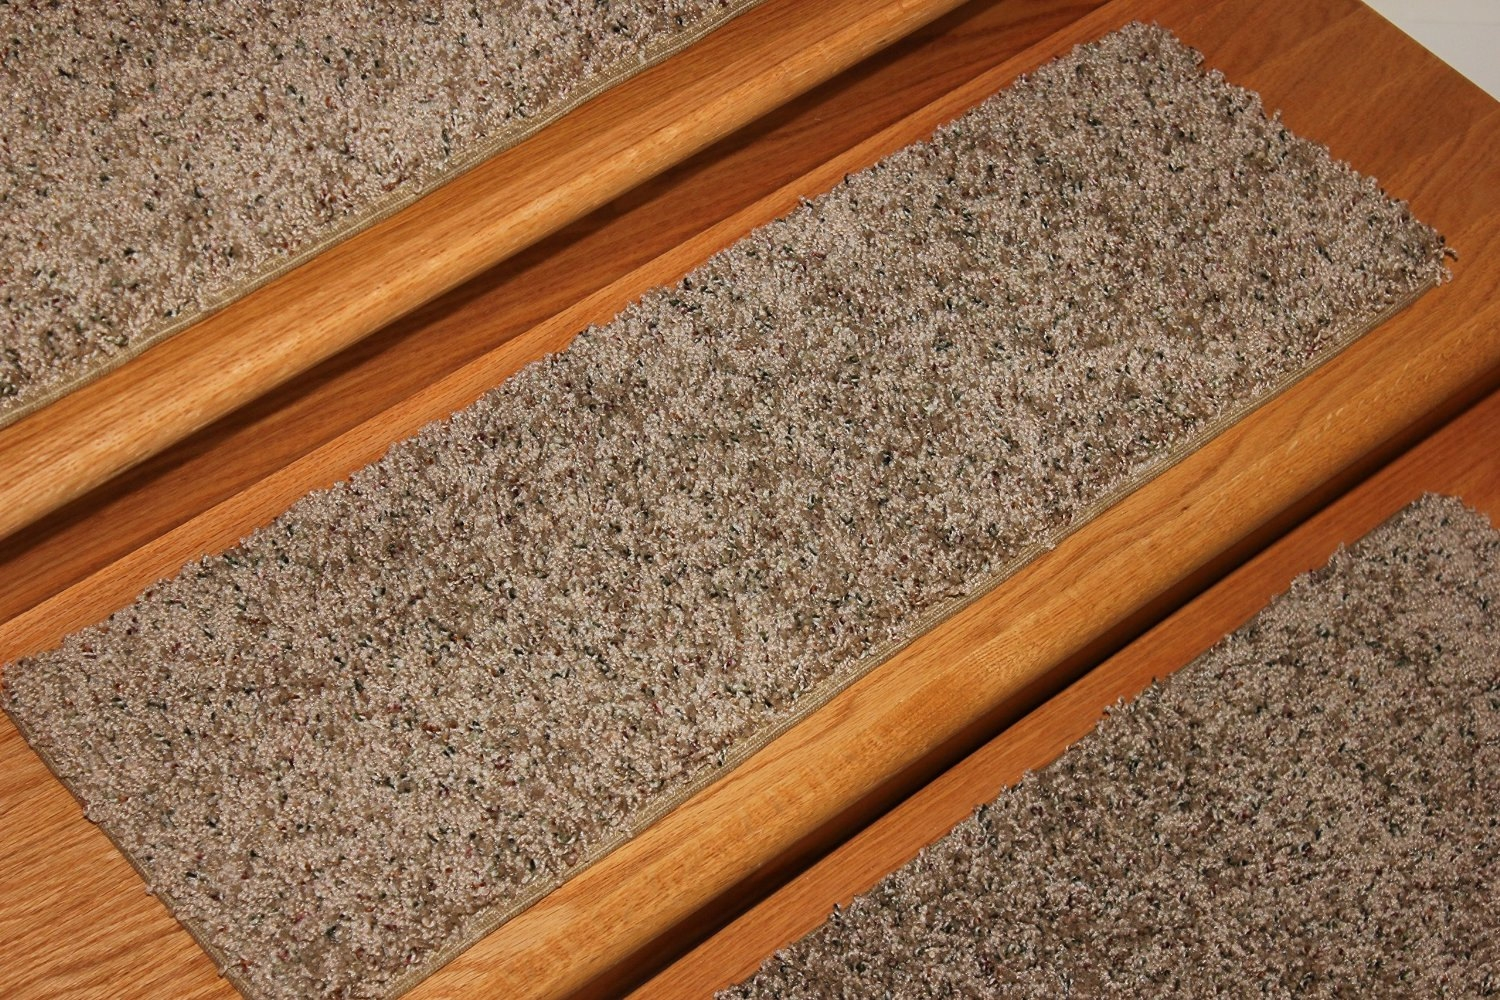 Stair Treads Etsy Throughout 8 Inch Stair Tread Rugs (Image 14 of 15)